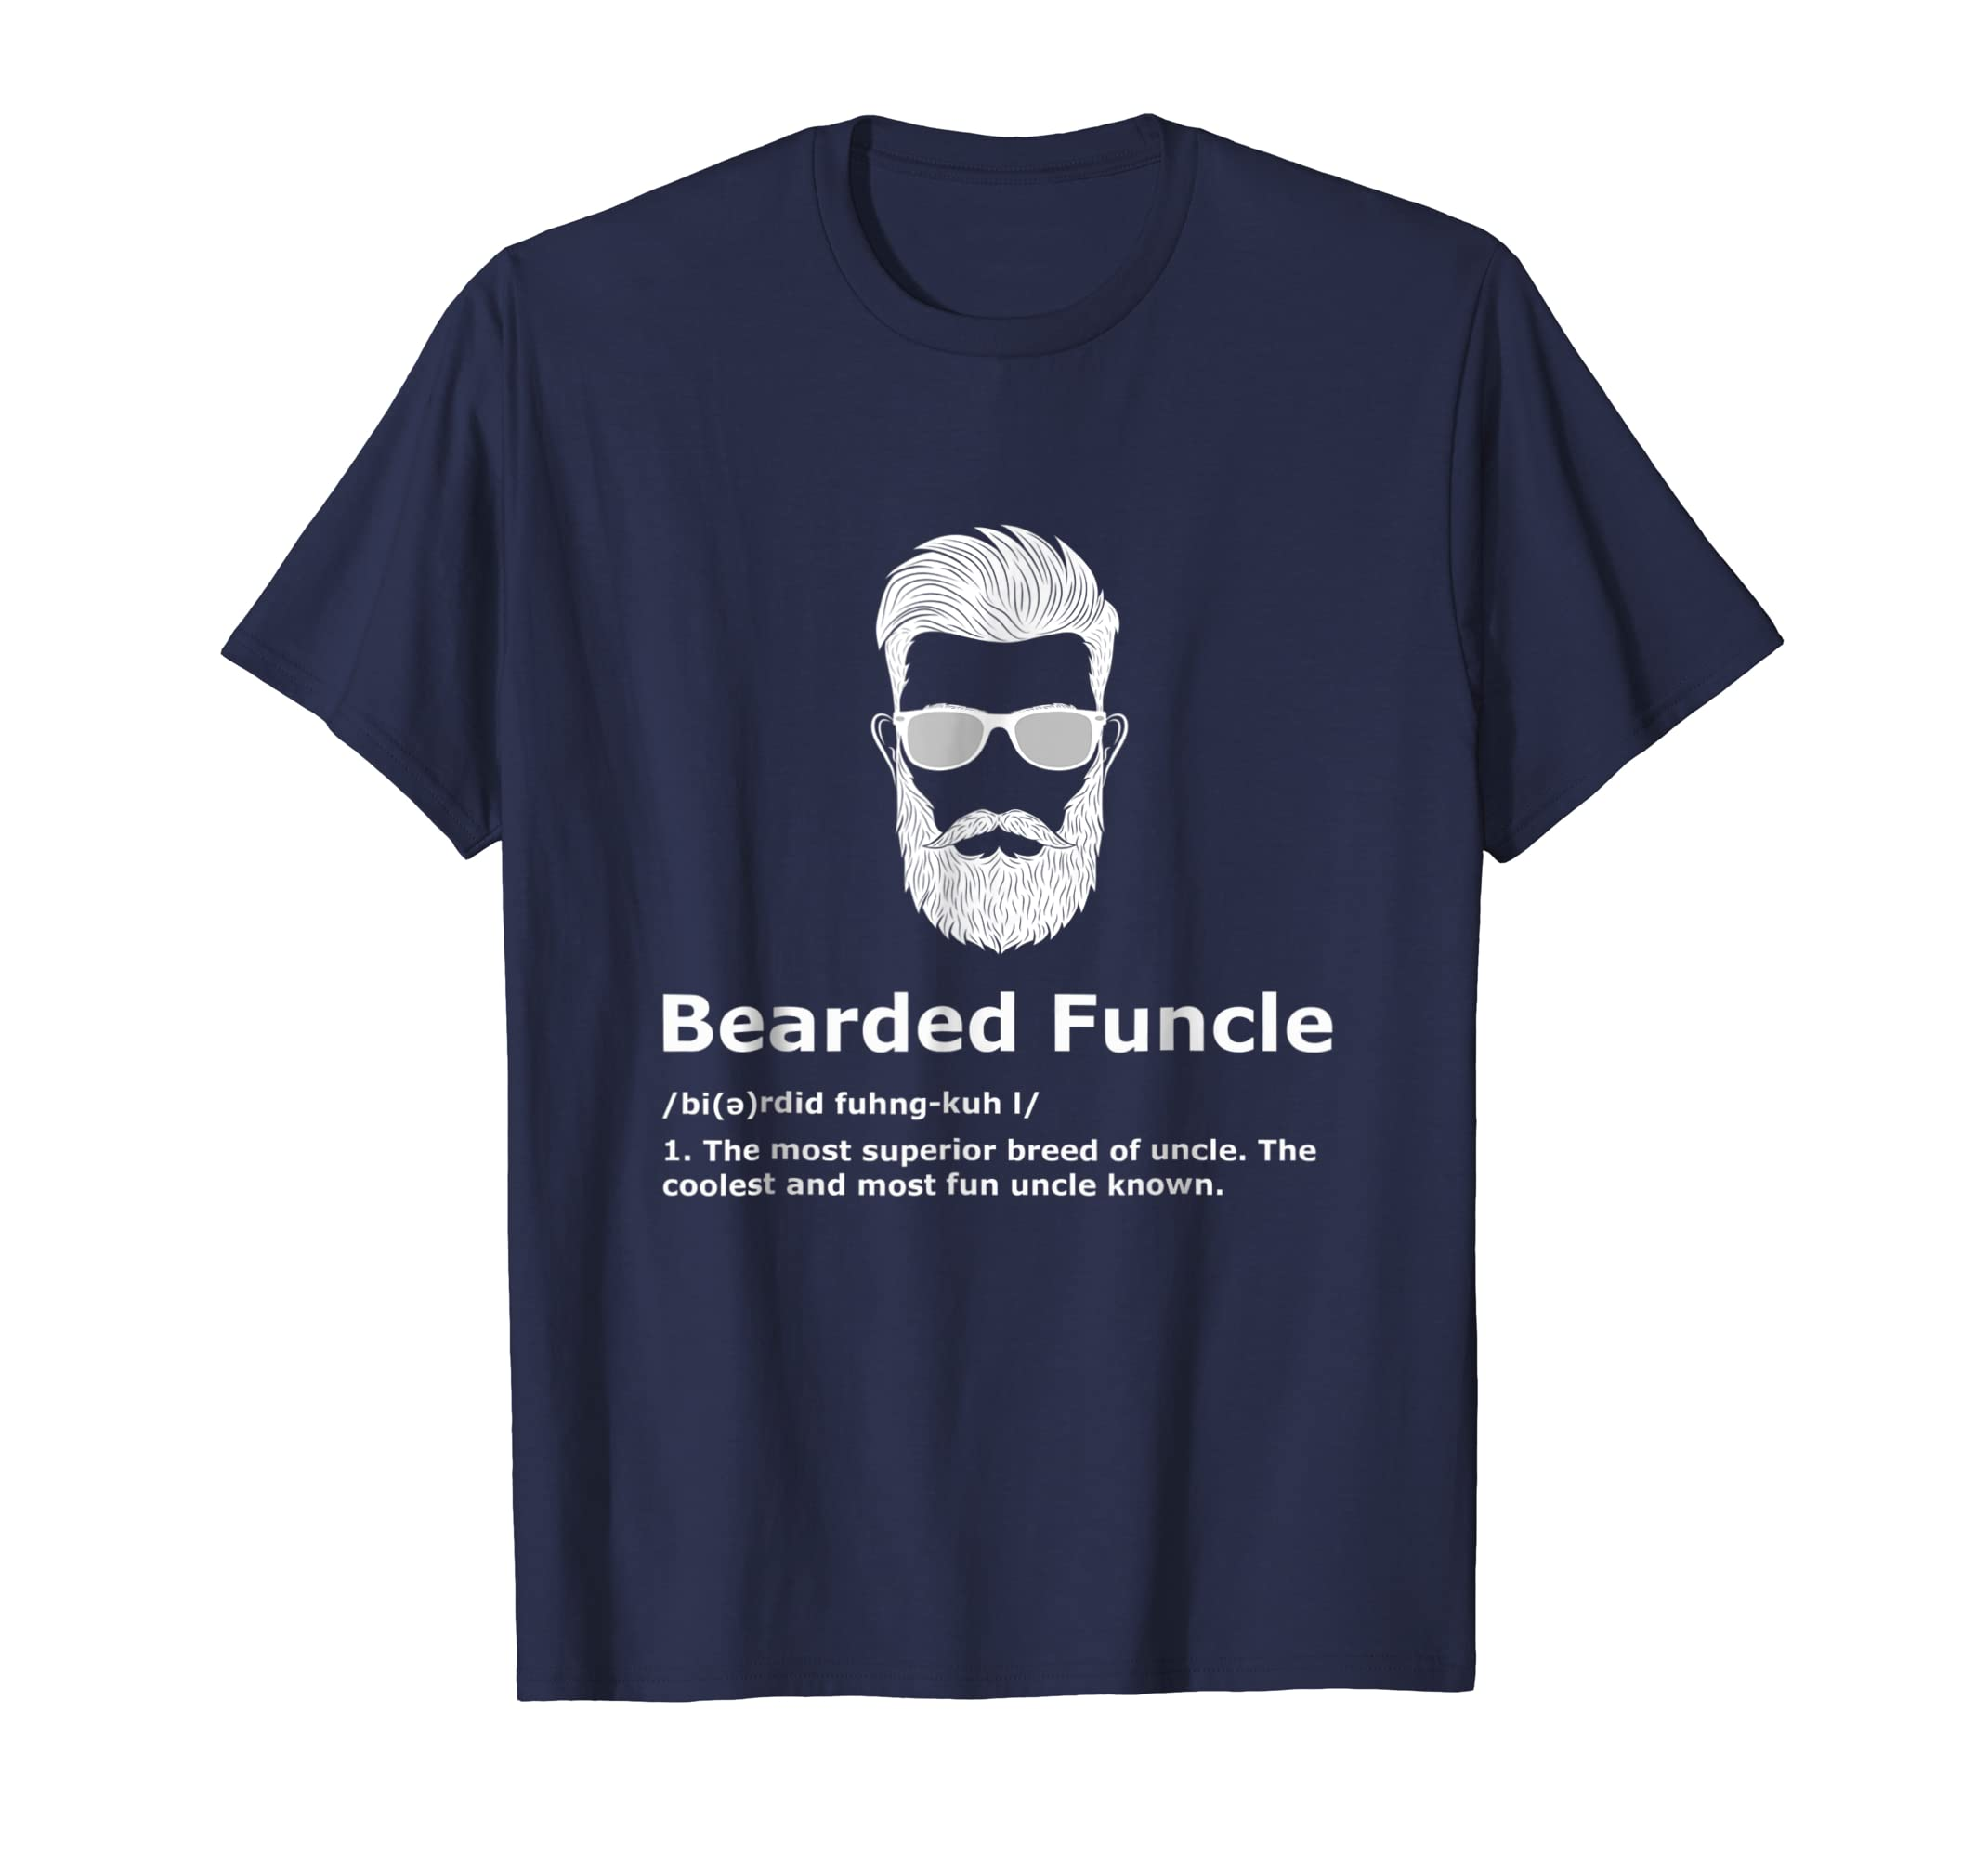 83f62cc72 Amazon.com: Mens Bearded Funcle Shirt Funny Uncle Definition T-Shirt:  Clothing